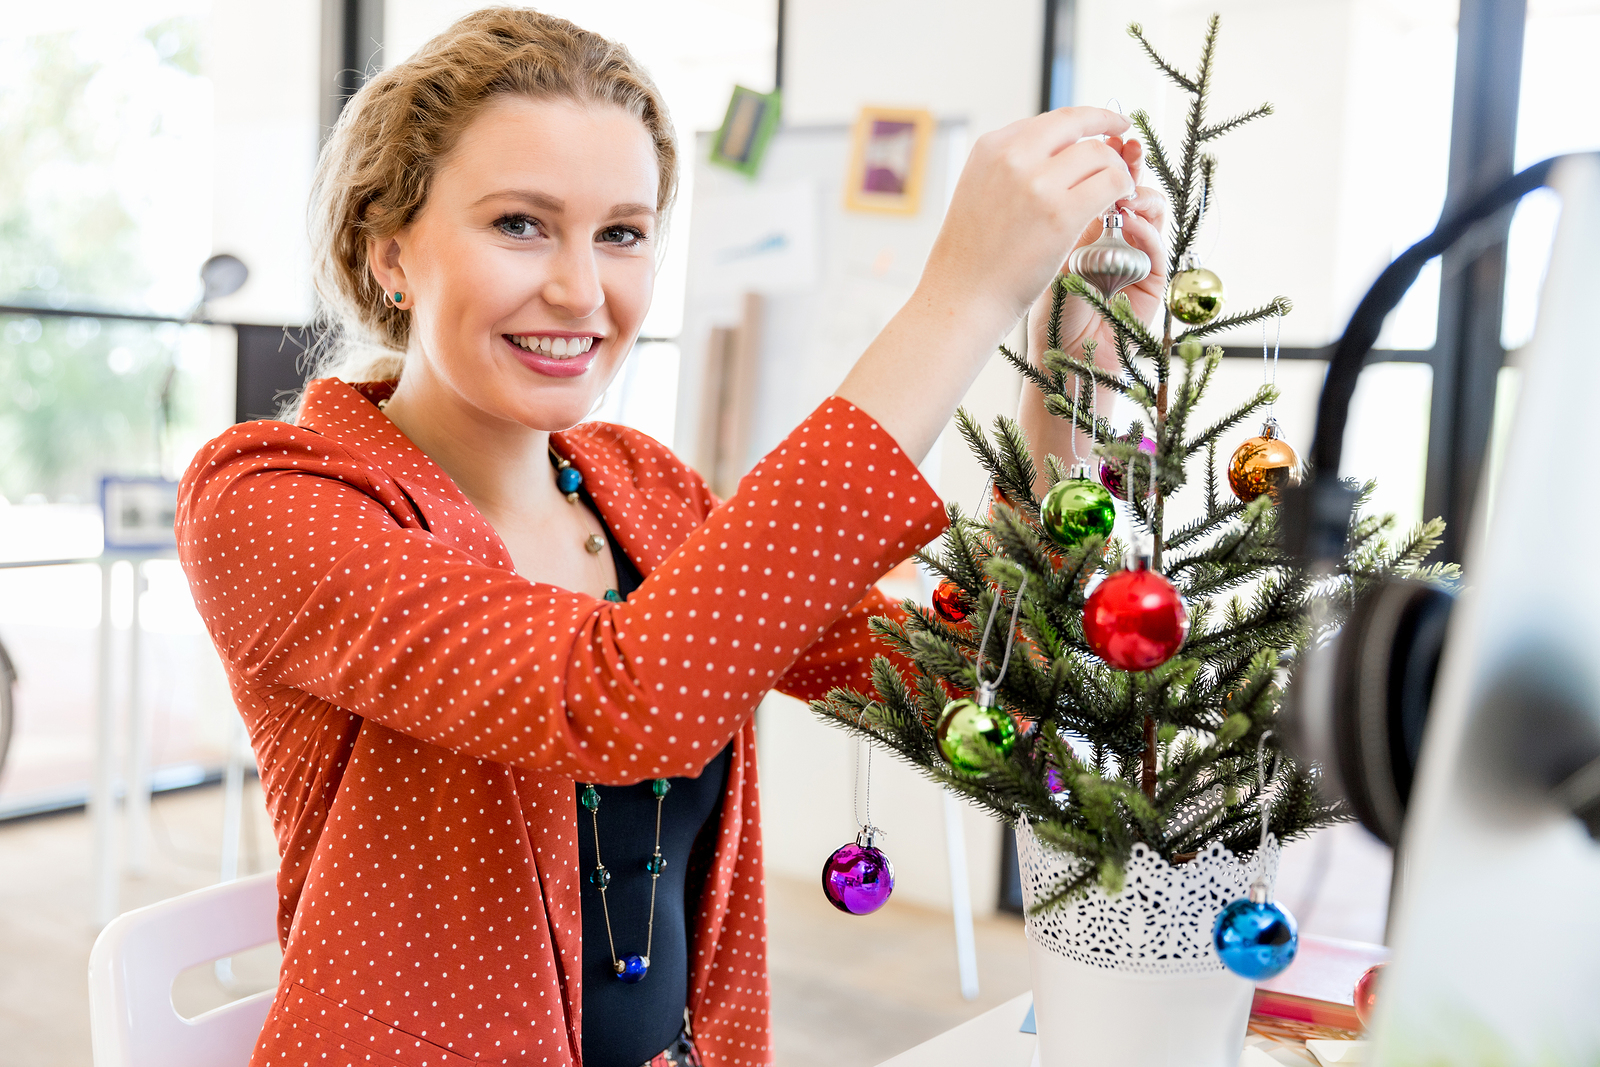 Attention Employers: Find Candidates for Seasonal Job Openings